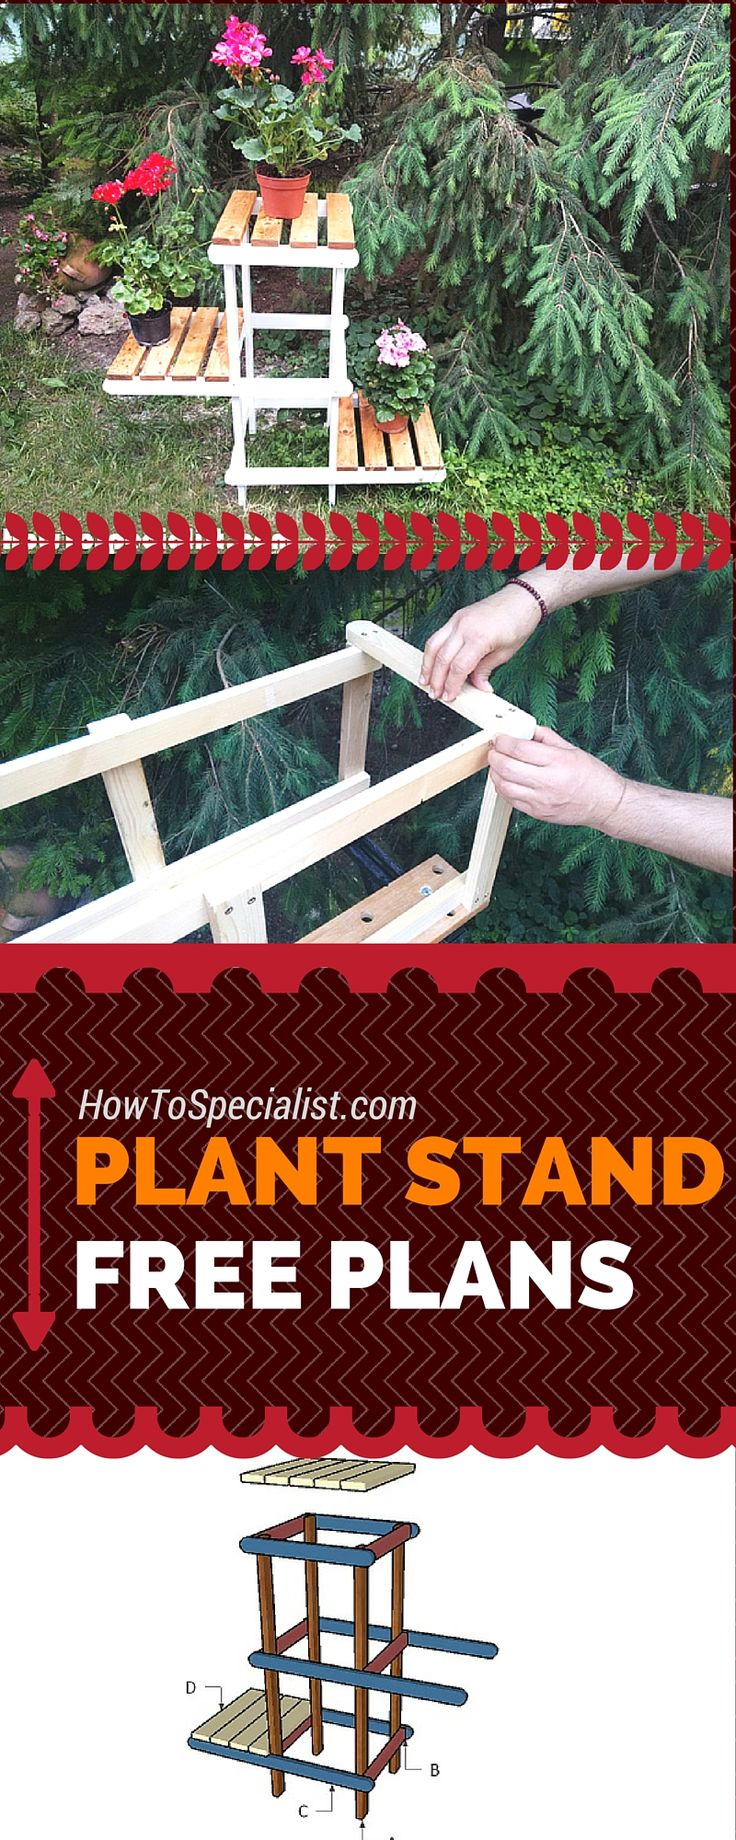 Diy bar plans howtospecialist how to build step by step diy plans - Free Plant Stand Plans Learn How To Build A Tiered Plant Stand With My Free